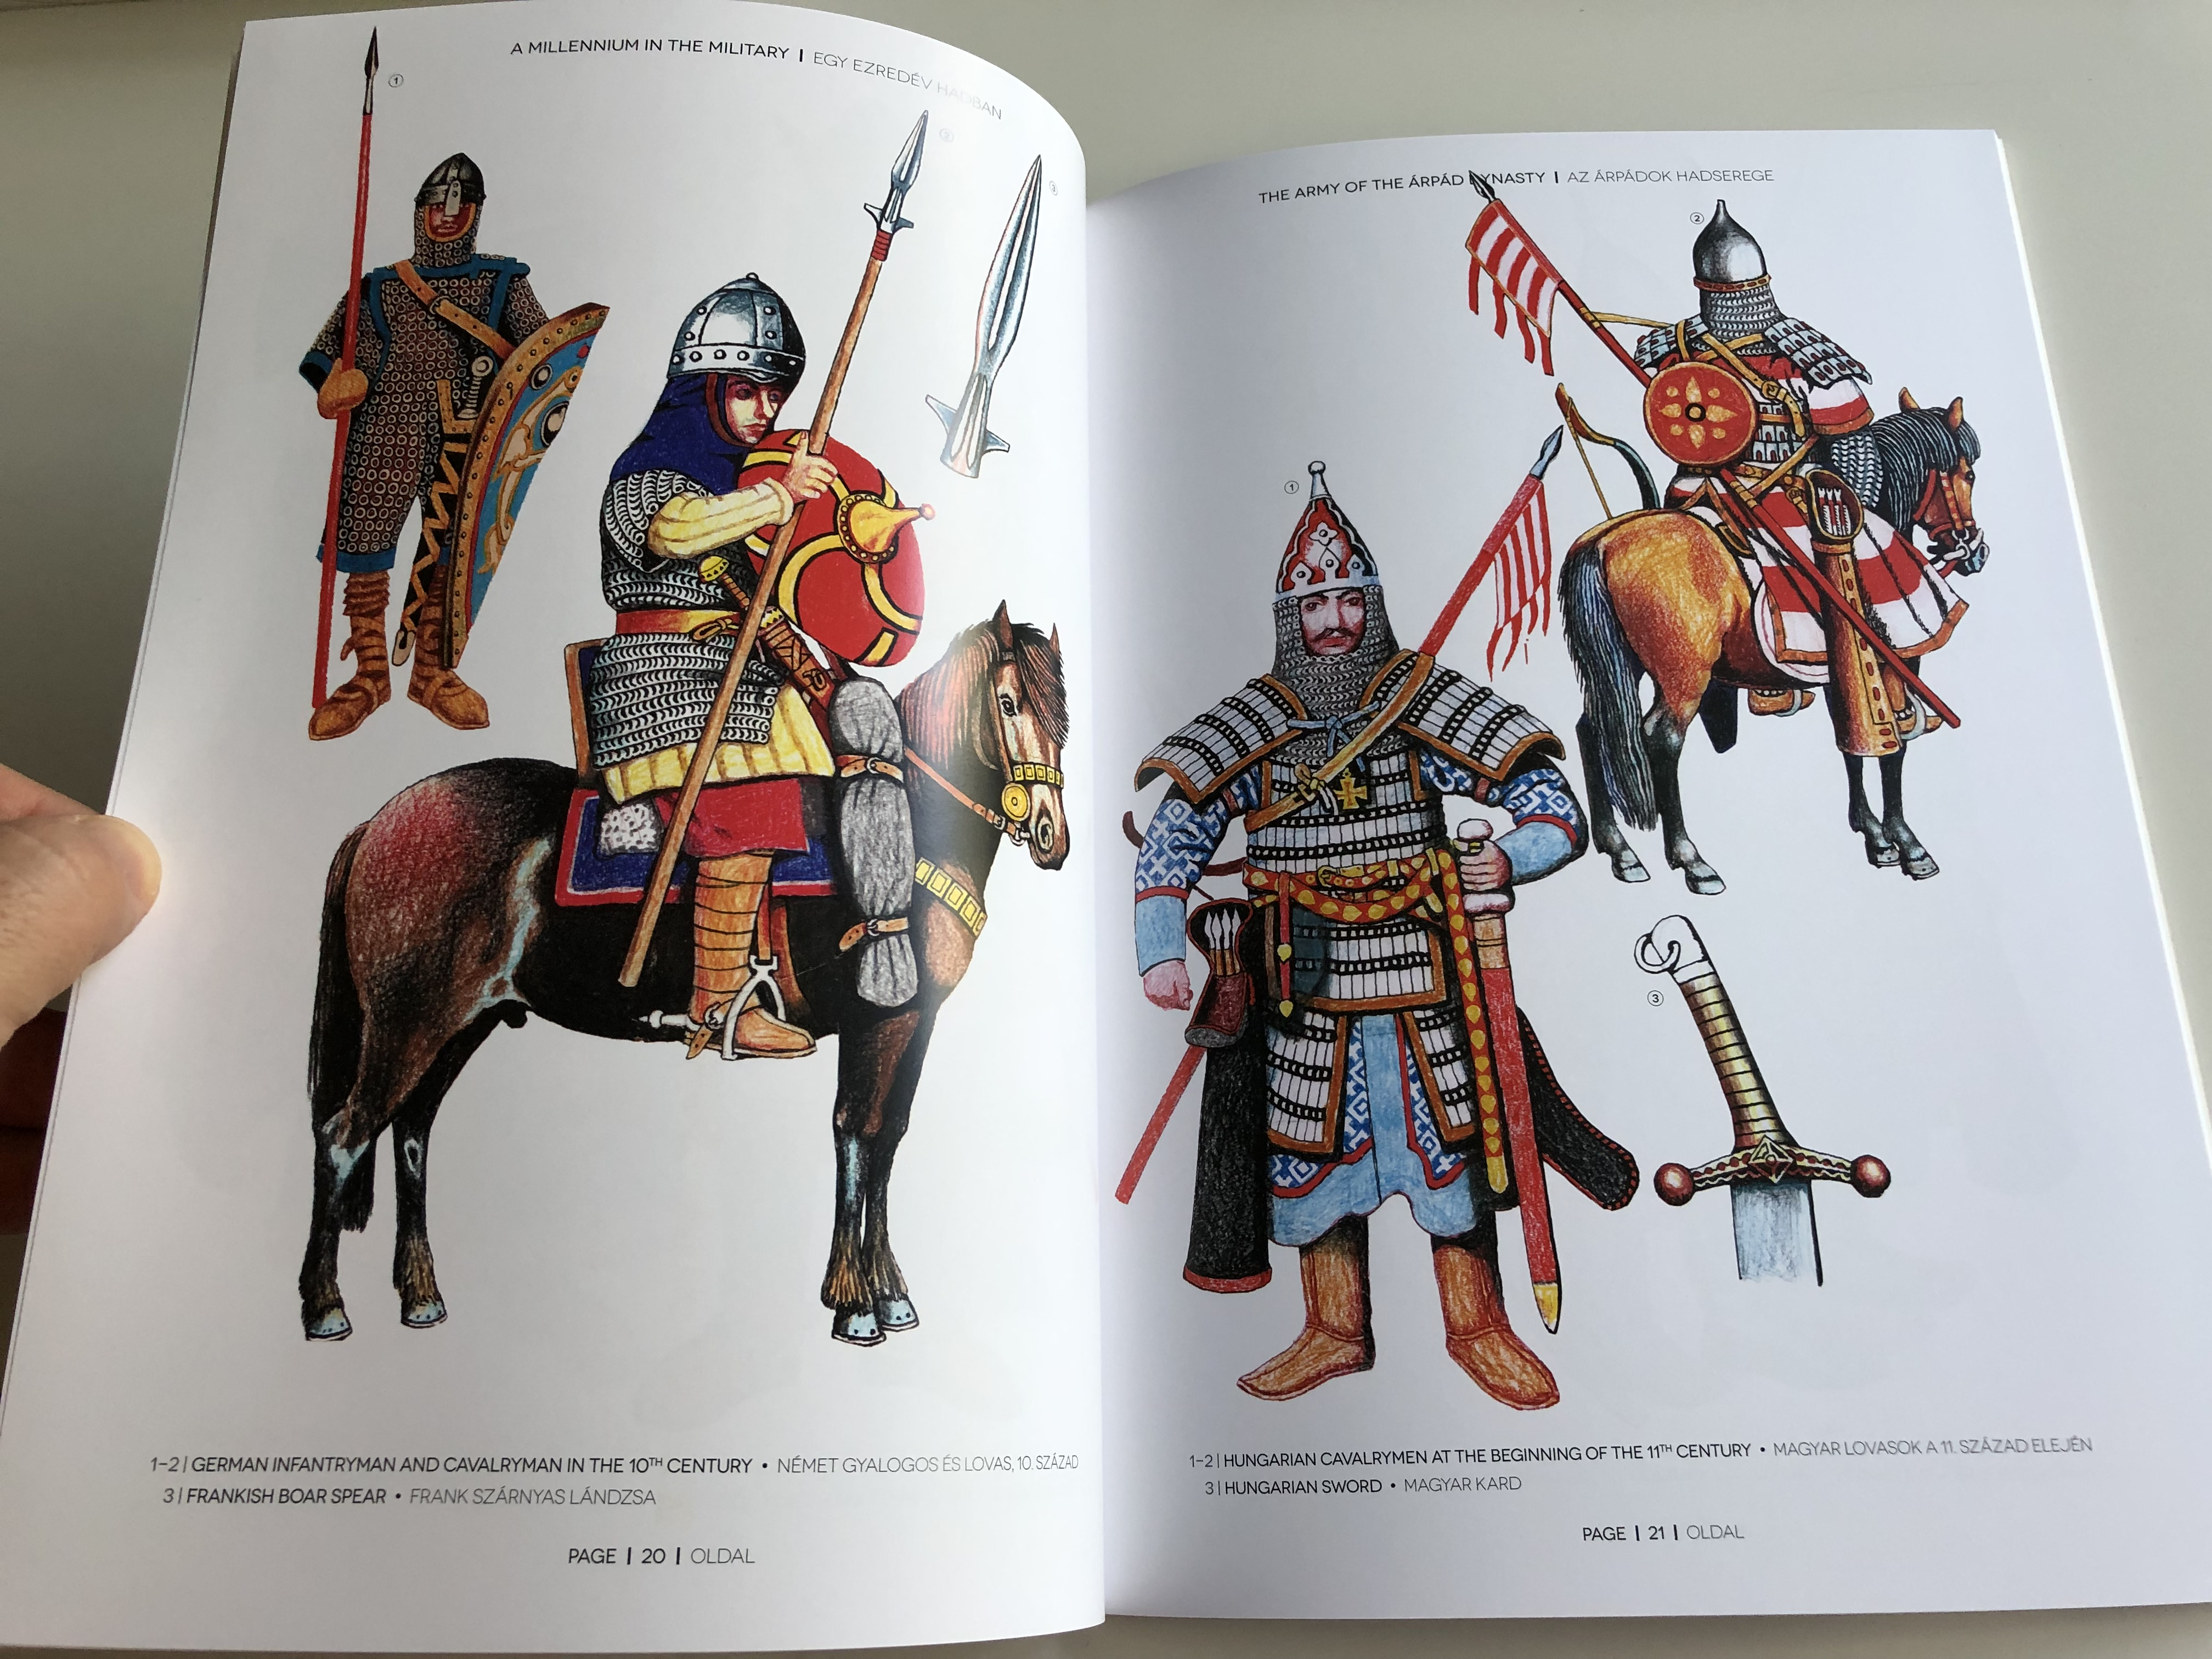 the-army-of-the-rp-d-dynasty-896-1301-by-gy-z-somogyi-az-rp-dok-hadserege-896-1301-a-millenium-in-the-military-egy-ezred-v-hadban-paperback-2017-hm-zr-nyi-6-.jpg